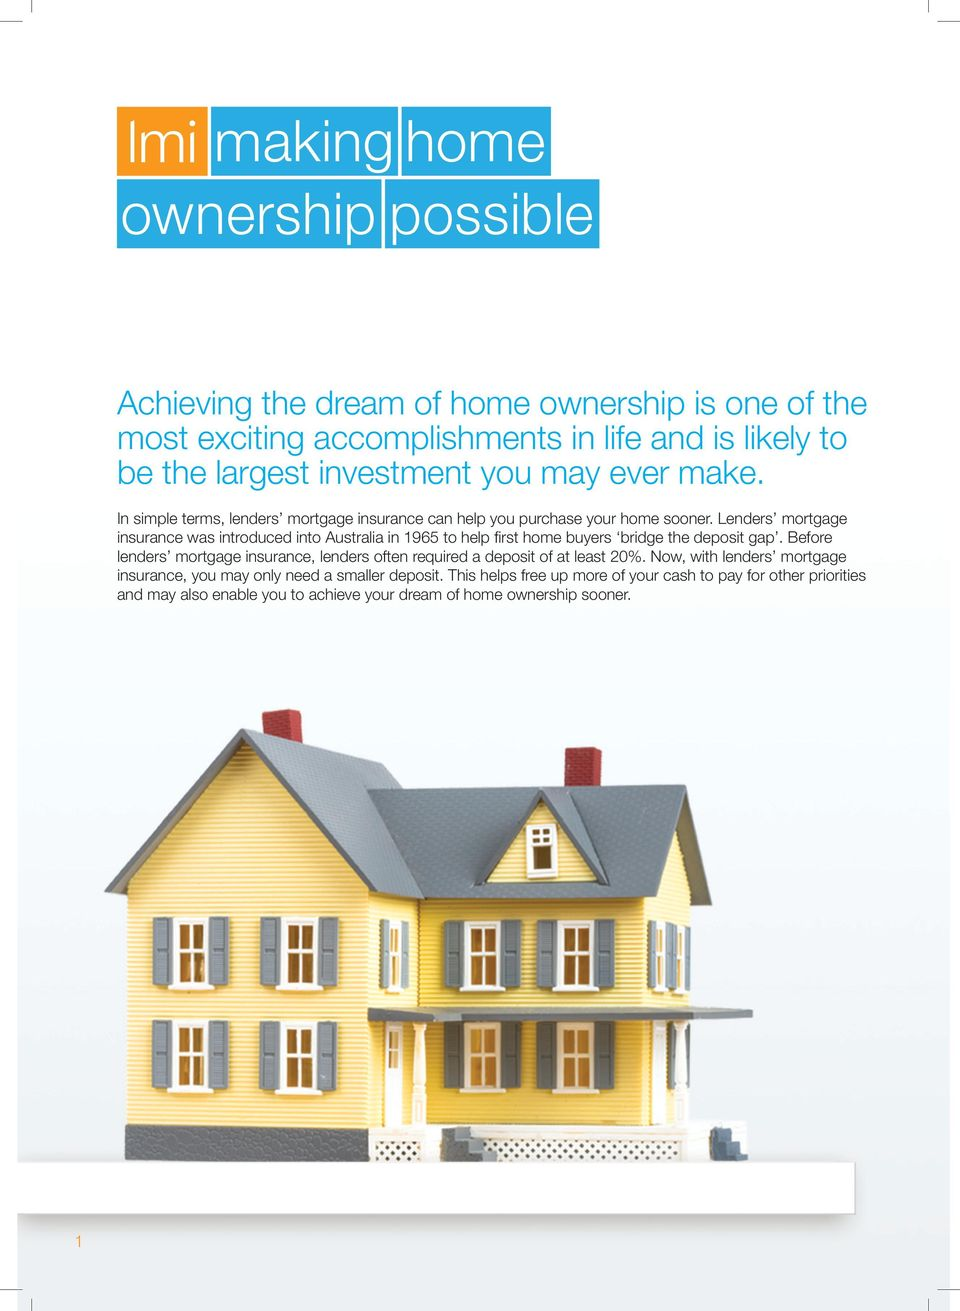 Lenders mortgage insurance was introduced into Australia in 1965 to help fi rst home buyers bridge the deposit gap.